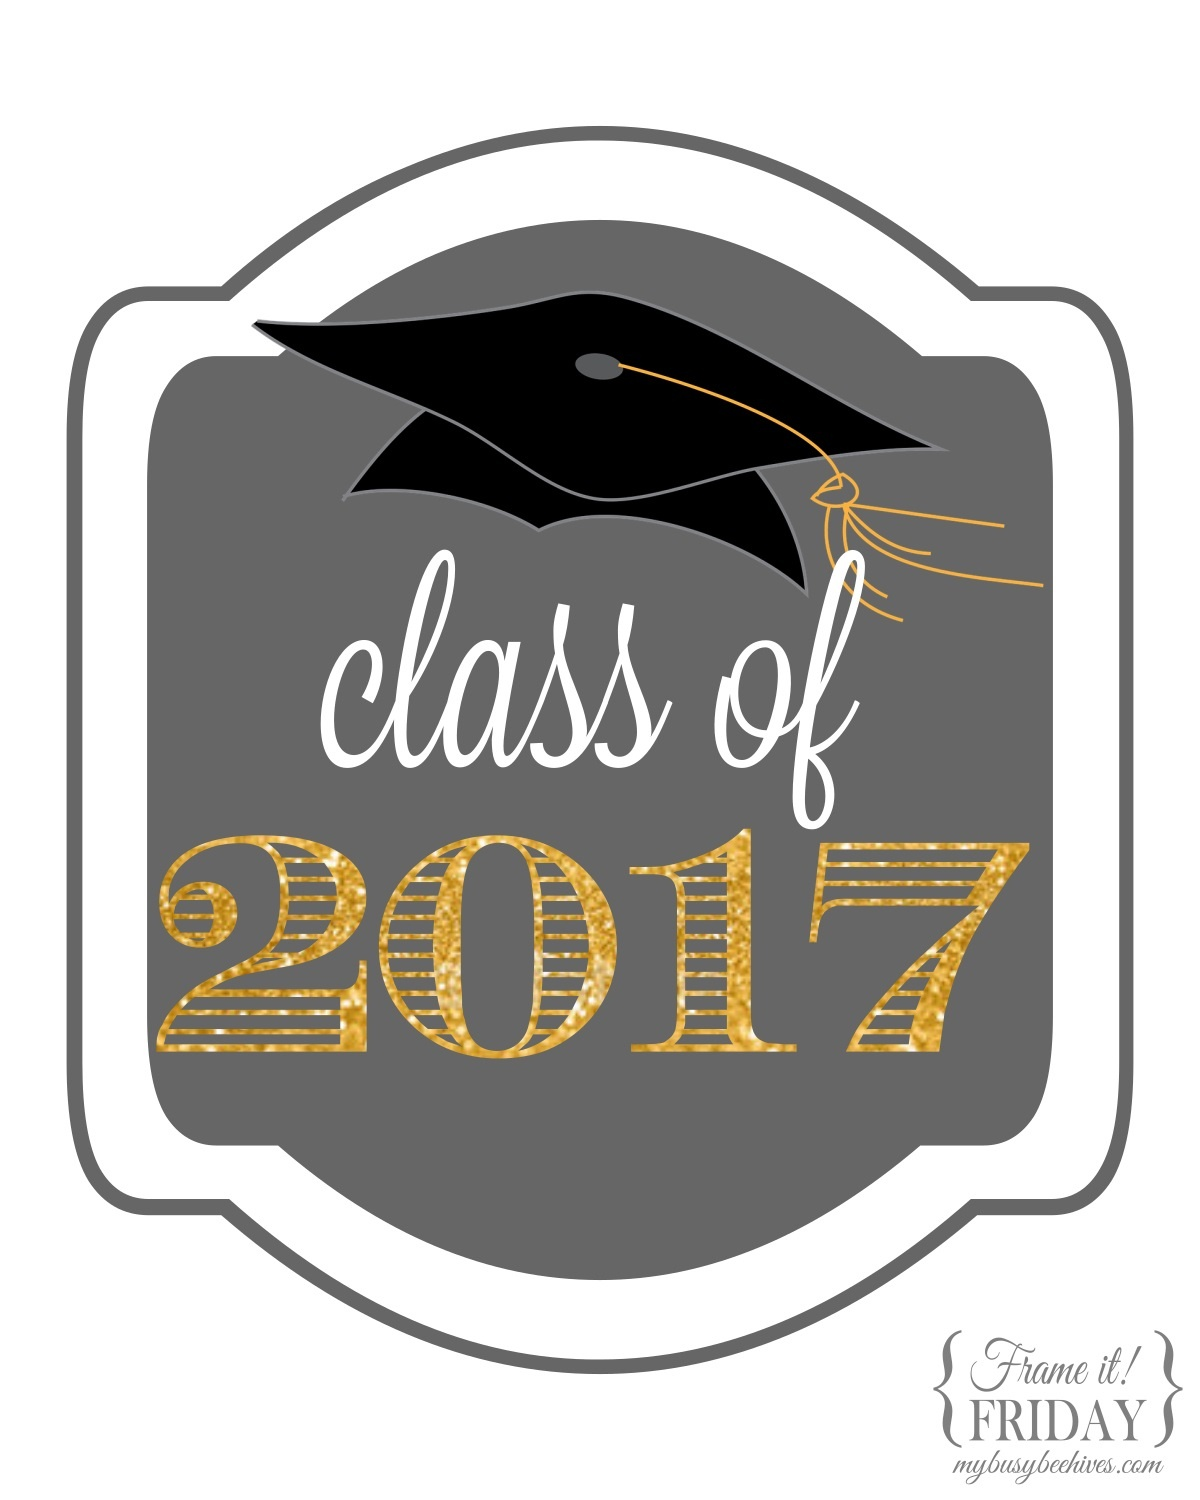 My Busy Beehives: Graduation Printables {Frame It! Friday} - Free Graduation Printables 2017